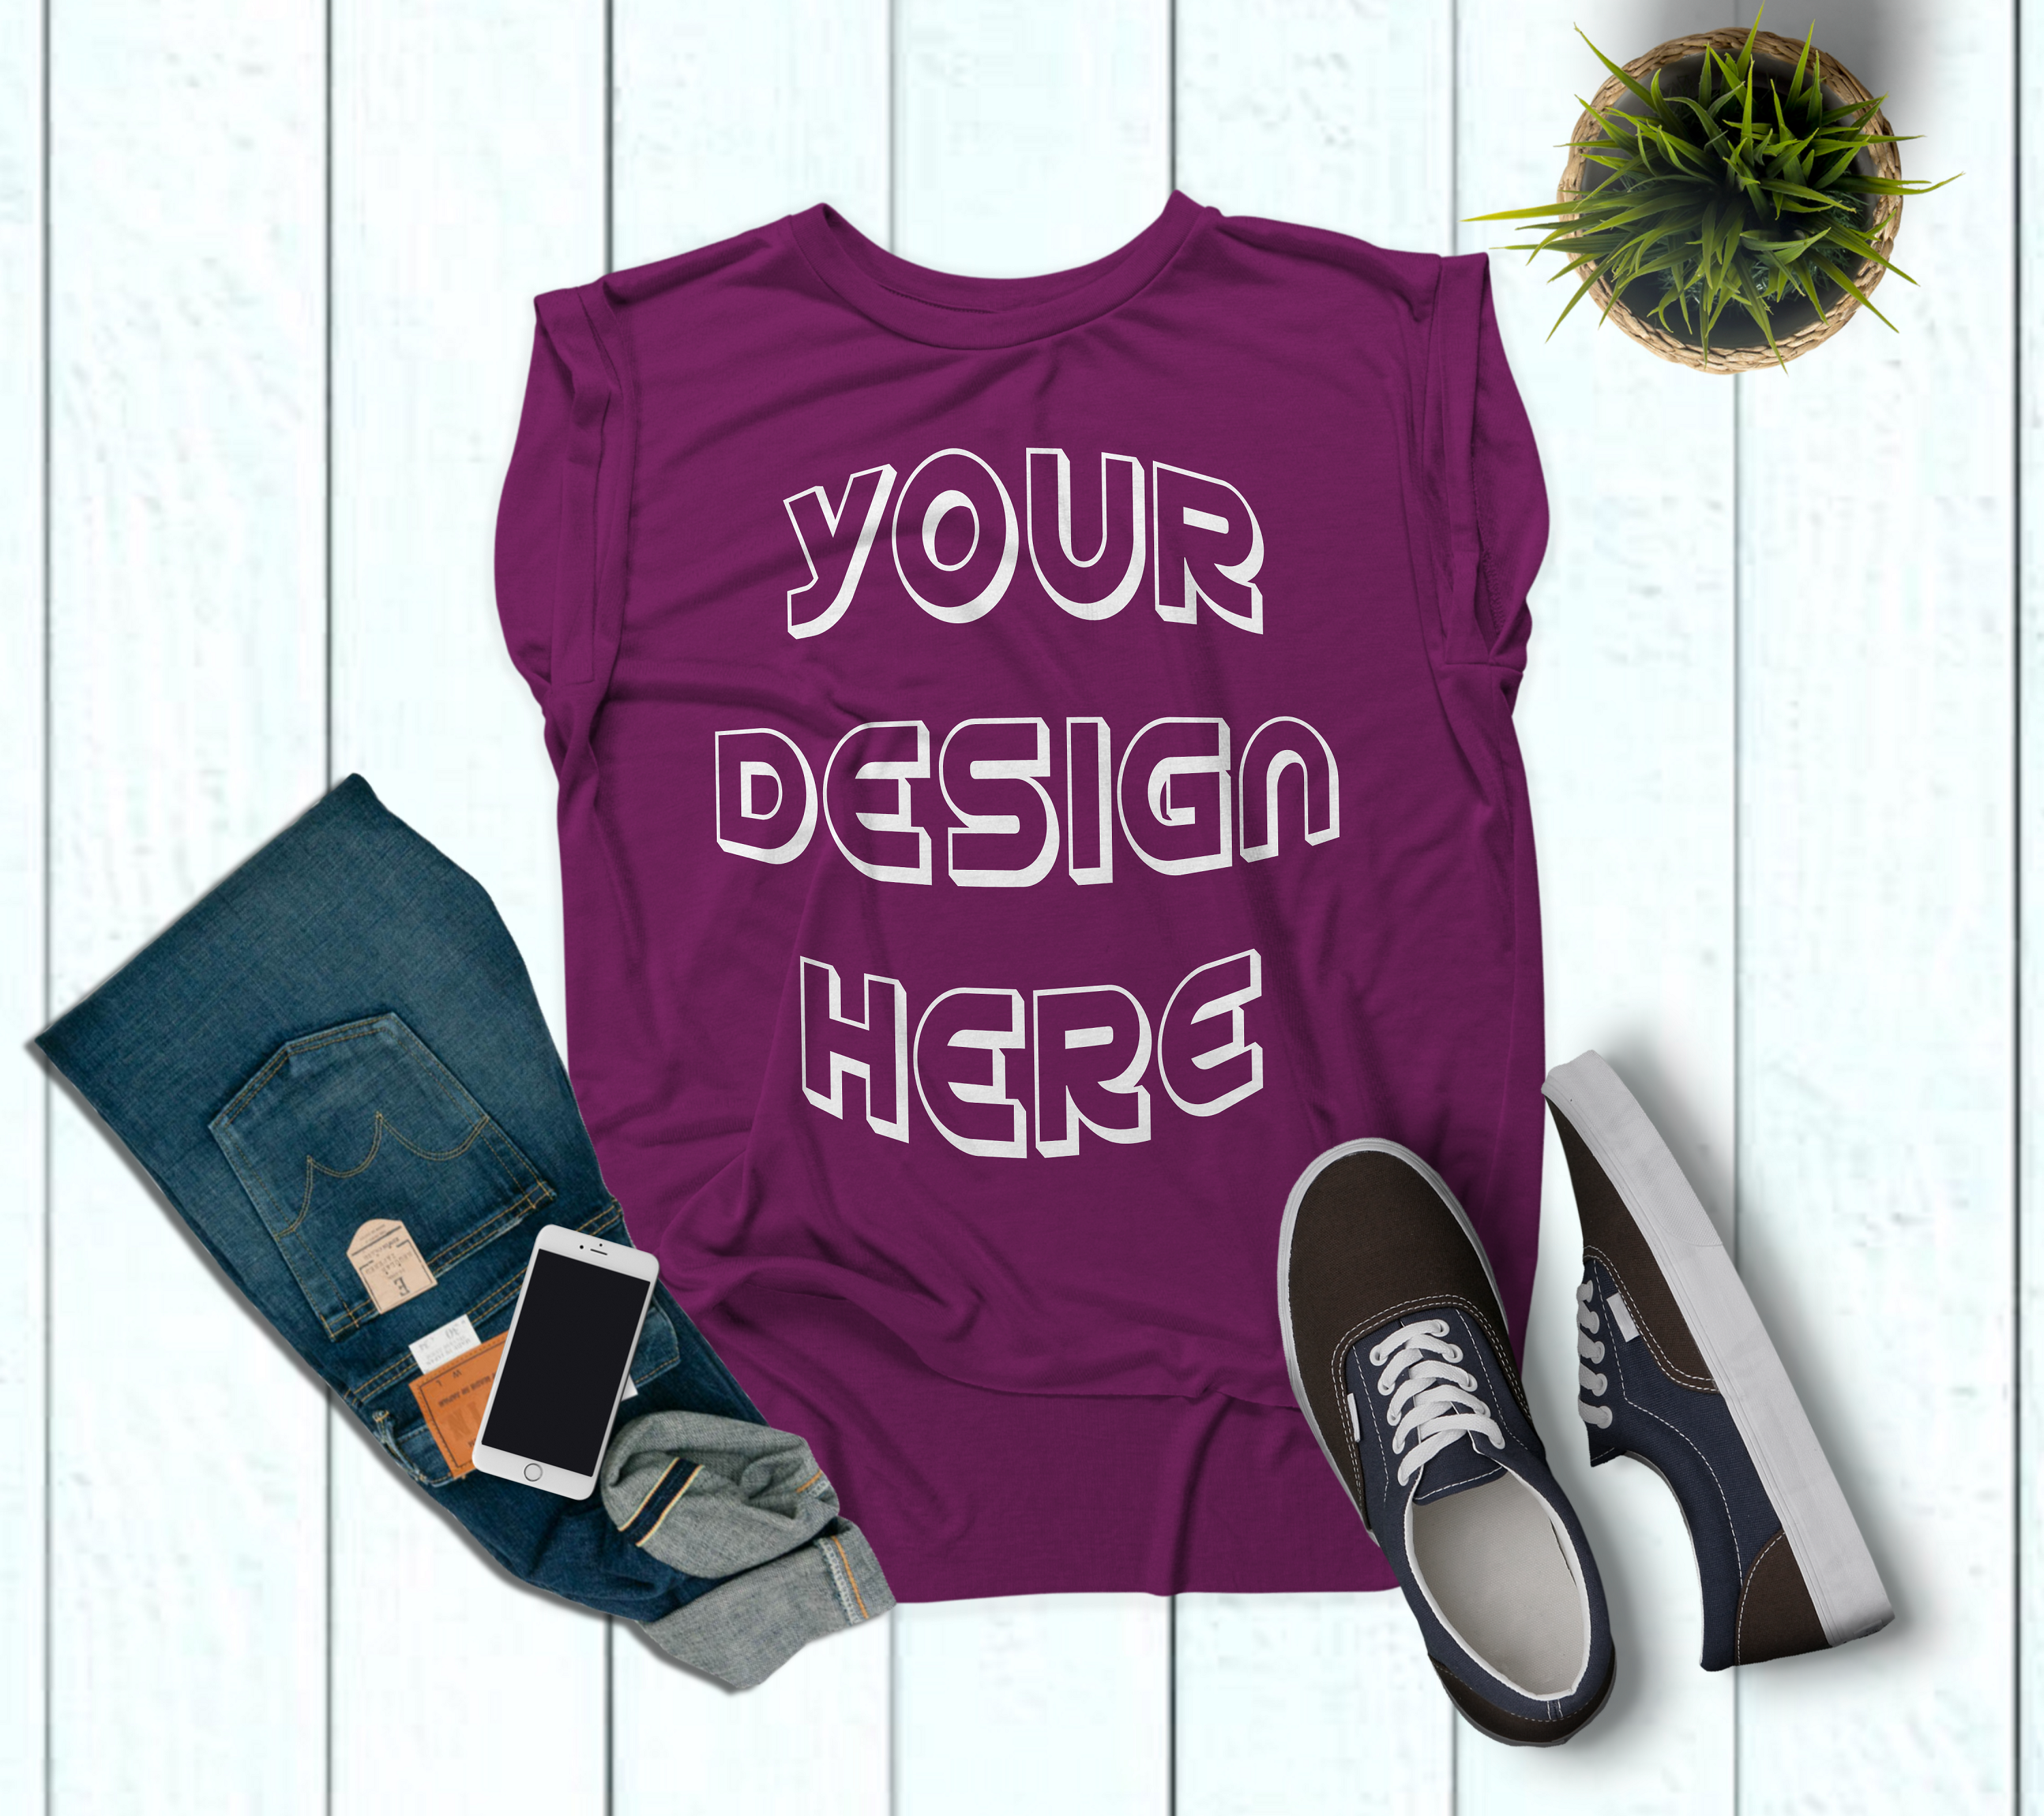 Women's Rolled Cuffs Tank Mockups - 7 example image 7